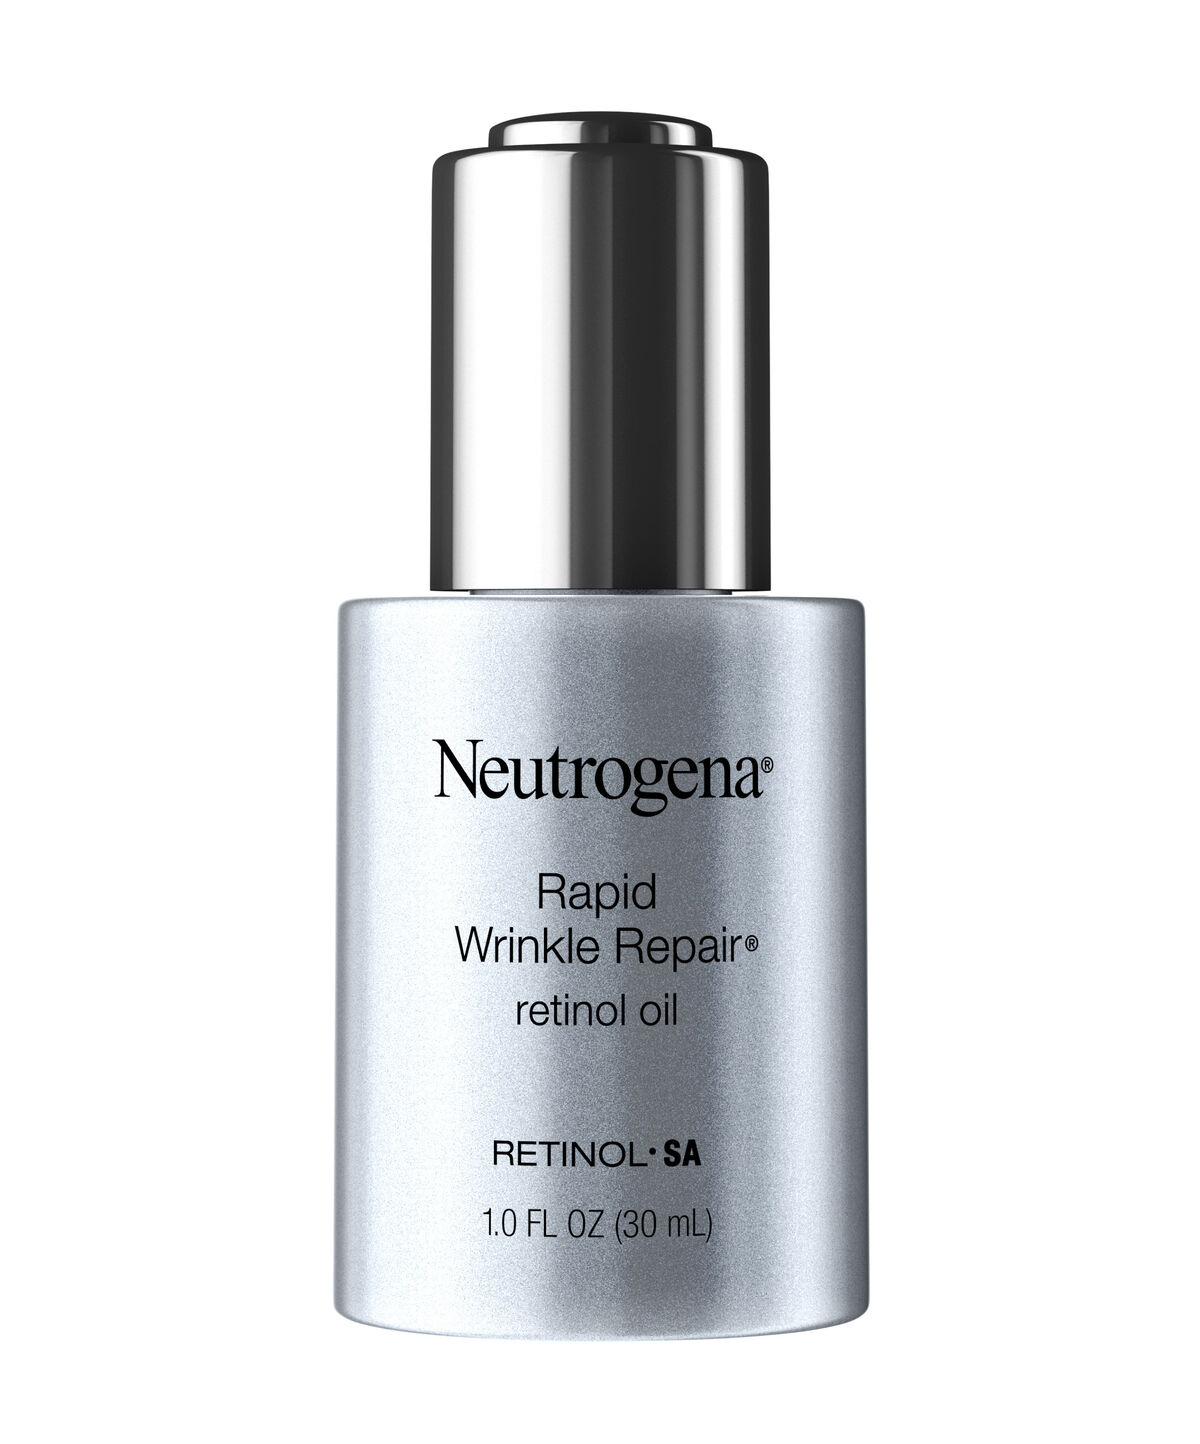 Dramatically reduce stubborn fine lines and even deep wrinkles